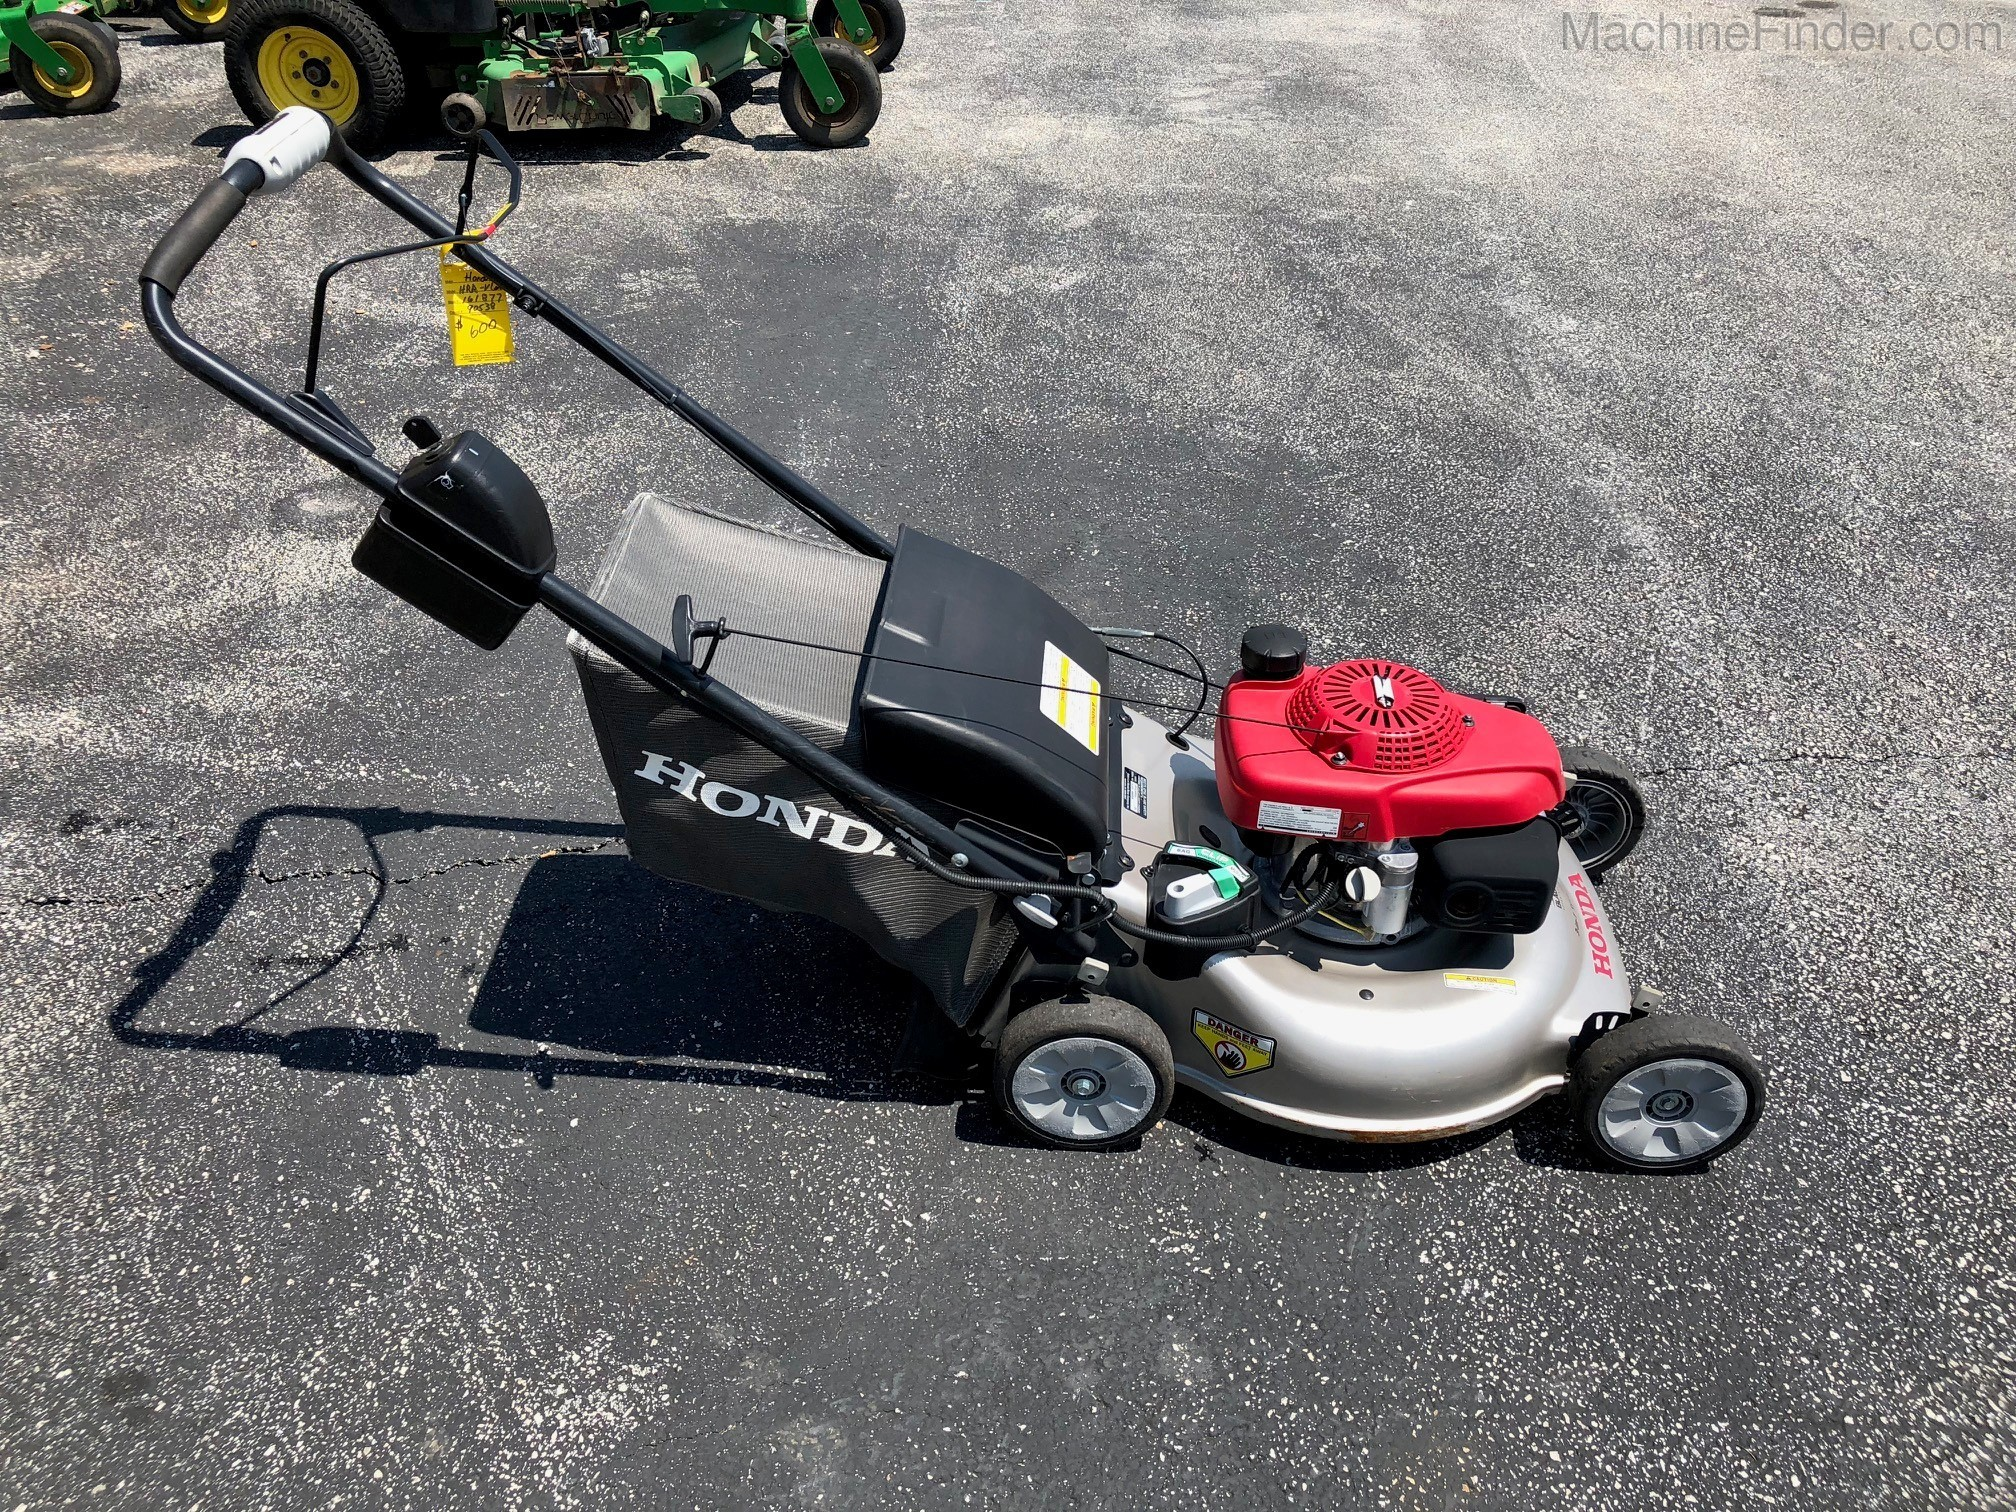 High Quality Honda WALK BEHIND MOWER   Residential Walk Behind Mowers   John Deere  MachineFinder